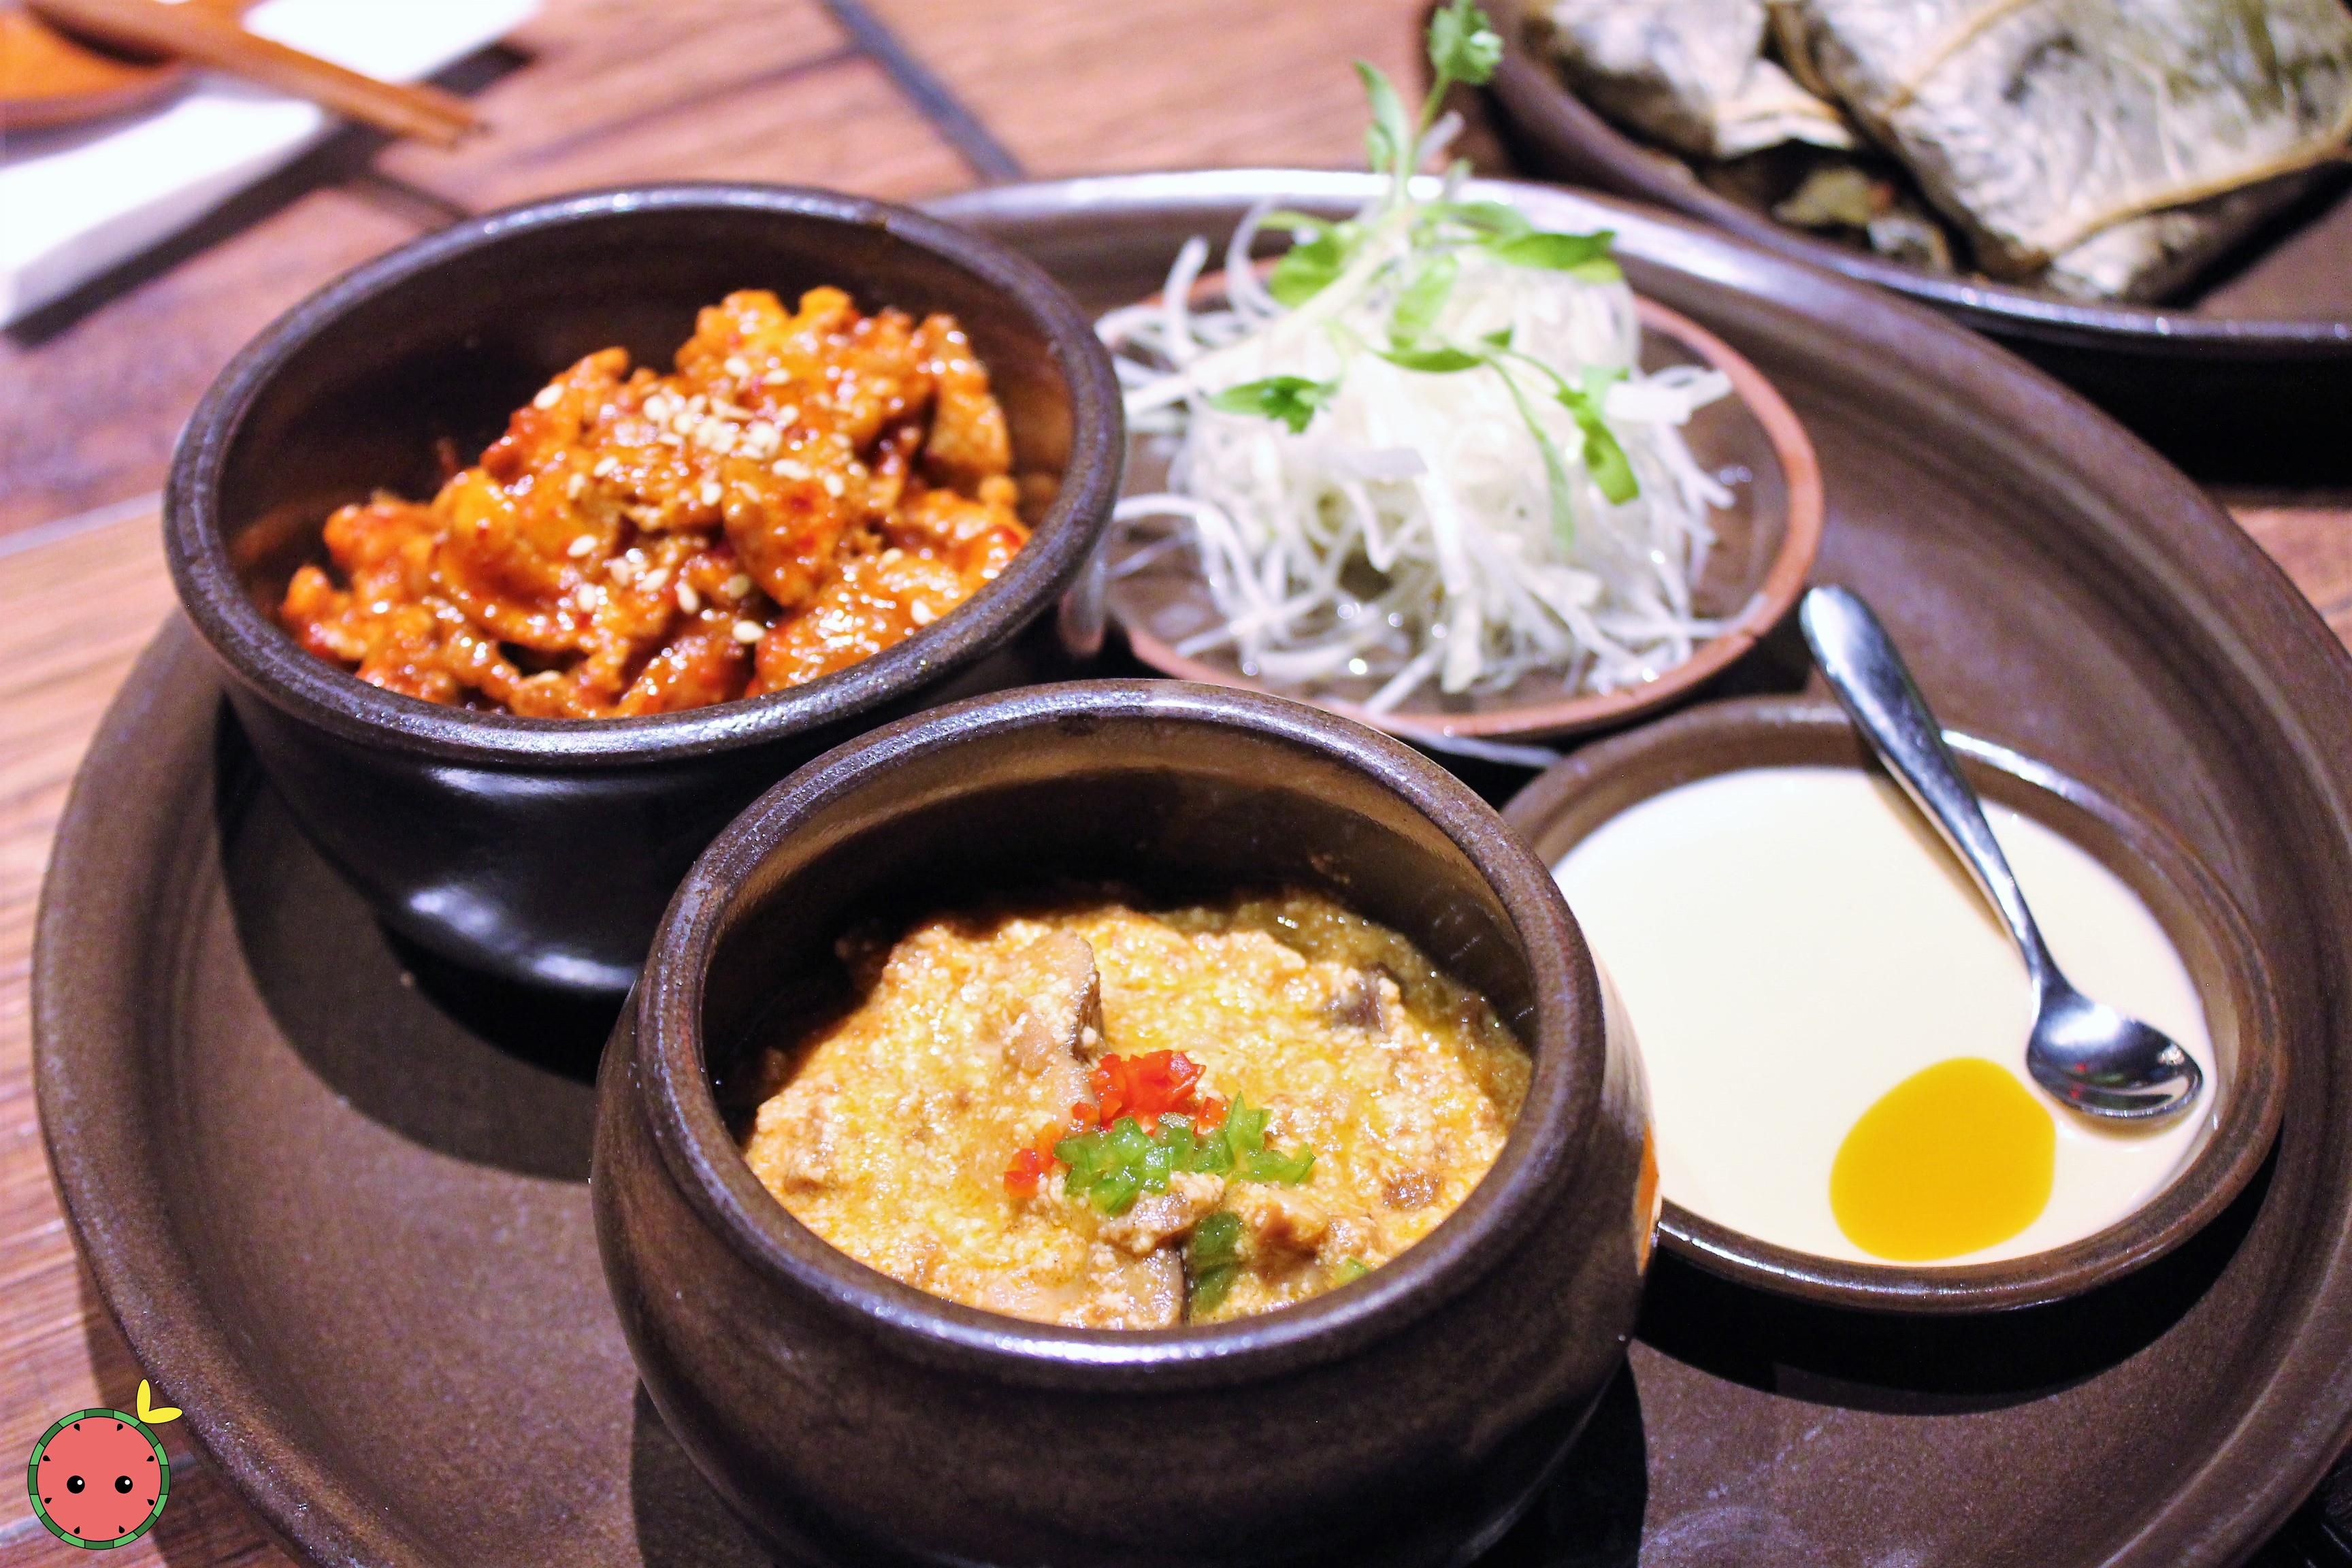 Ssam Platter with Spicy Pork and Gang-deon-jang (1)